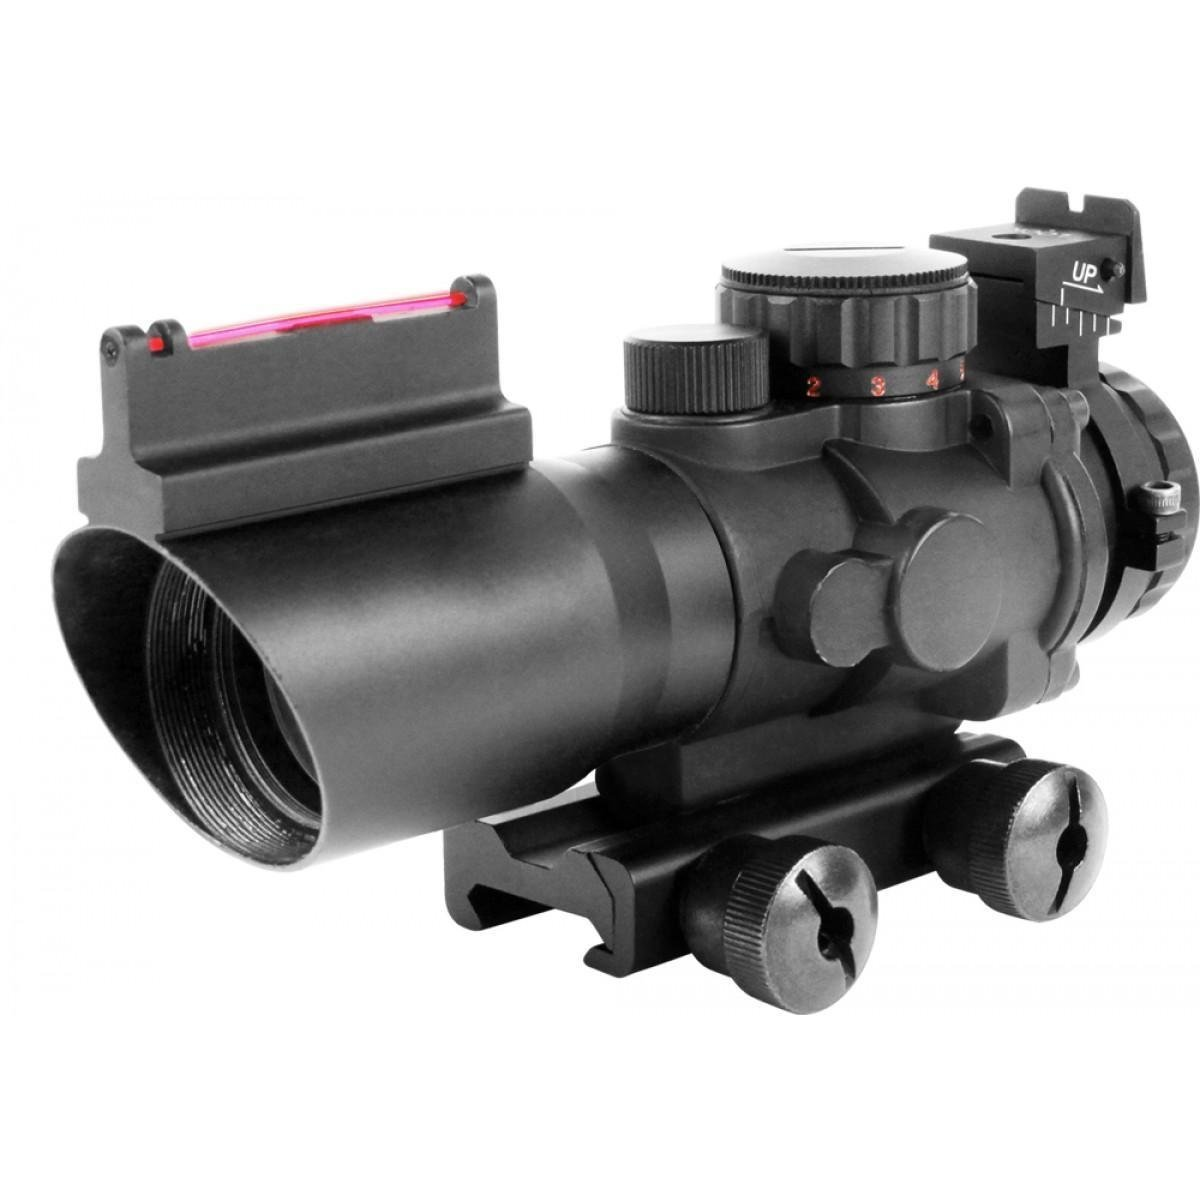 AIM Sports JTAPO432G Tri-Illuminated 4X32MM Scope w/Fiber Optic Sight